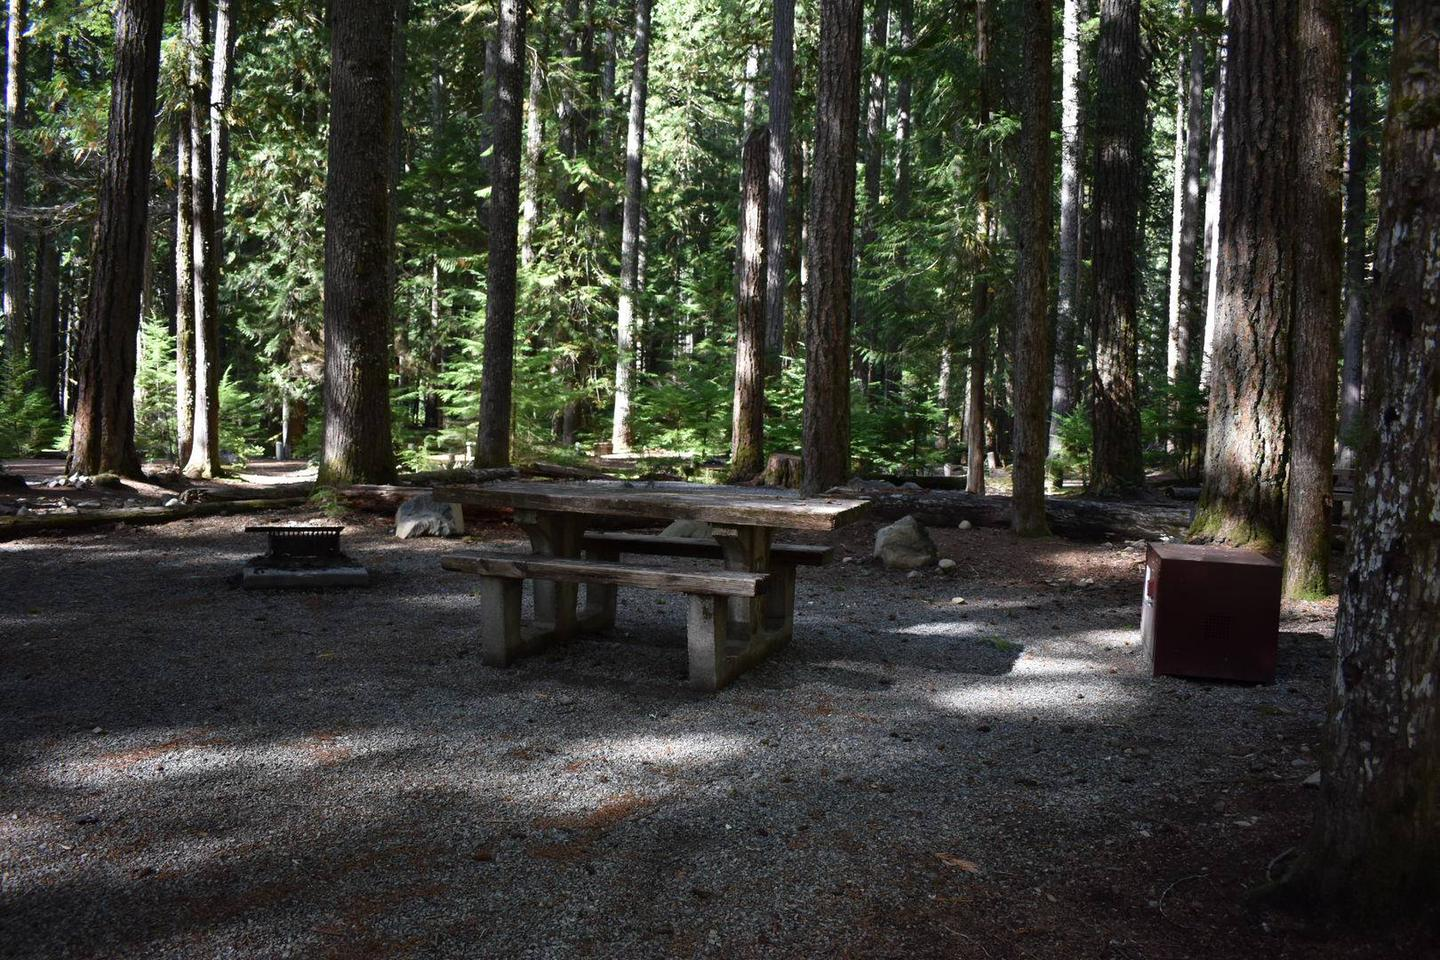 Ohanapecosh Campground - Site D024 AmenitiesCampers are provided with a picnic table, food storage box, and fire pit.